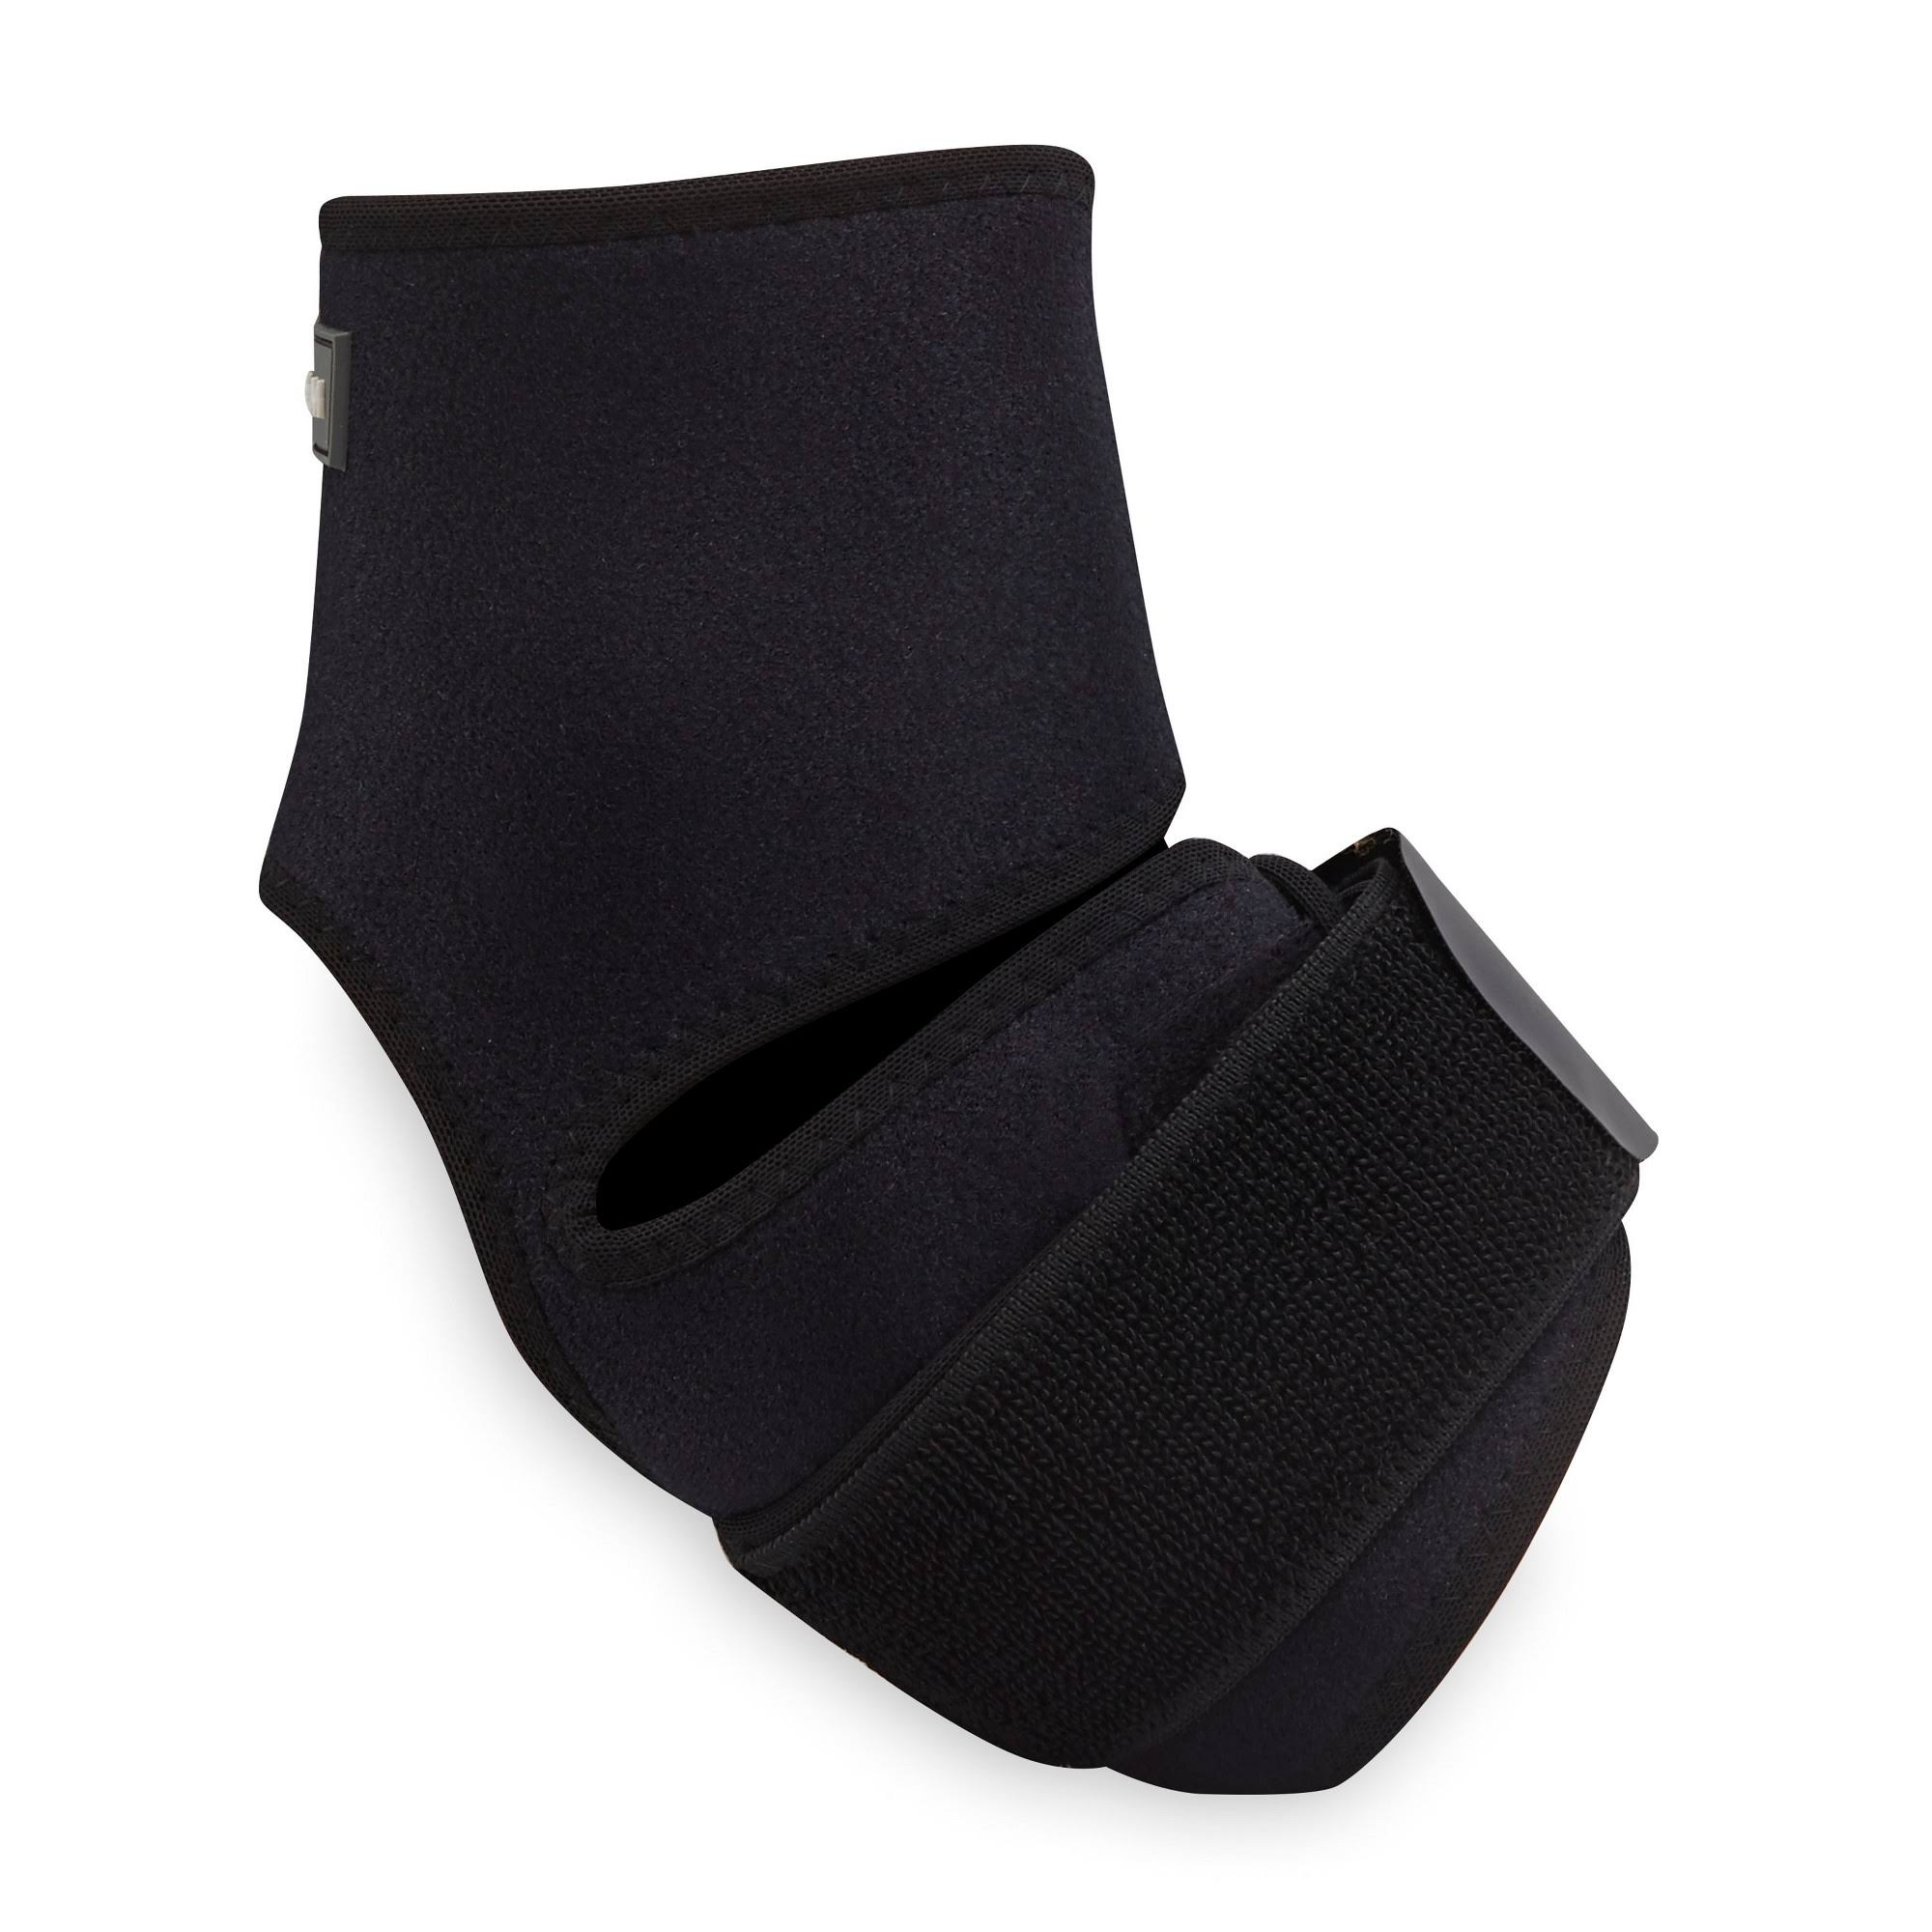 Gaiam Restore Hot and Cold Therapy Foot Wrap - Black